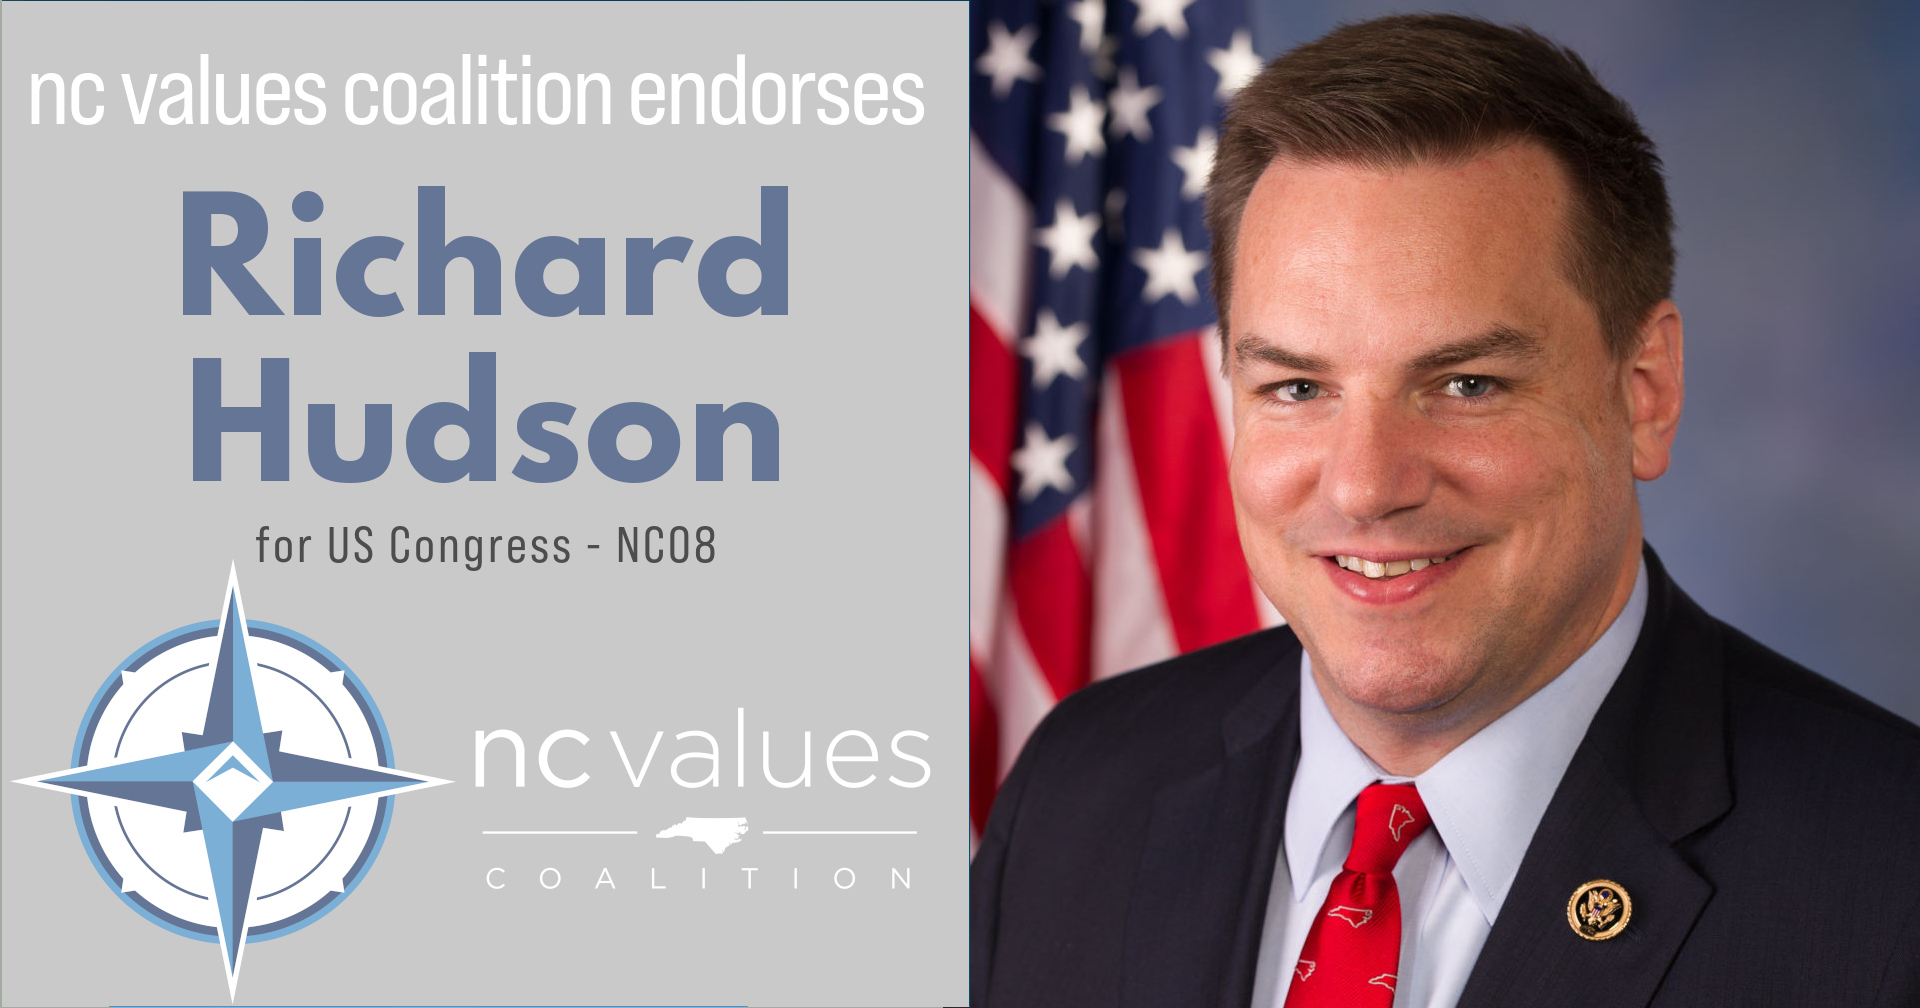 Richard Hudson for Congress